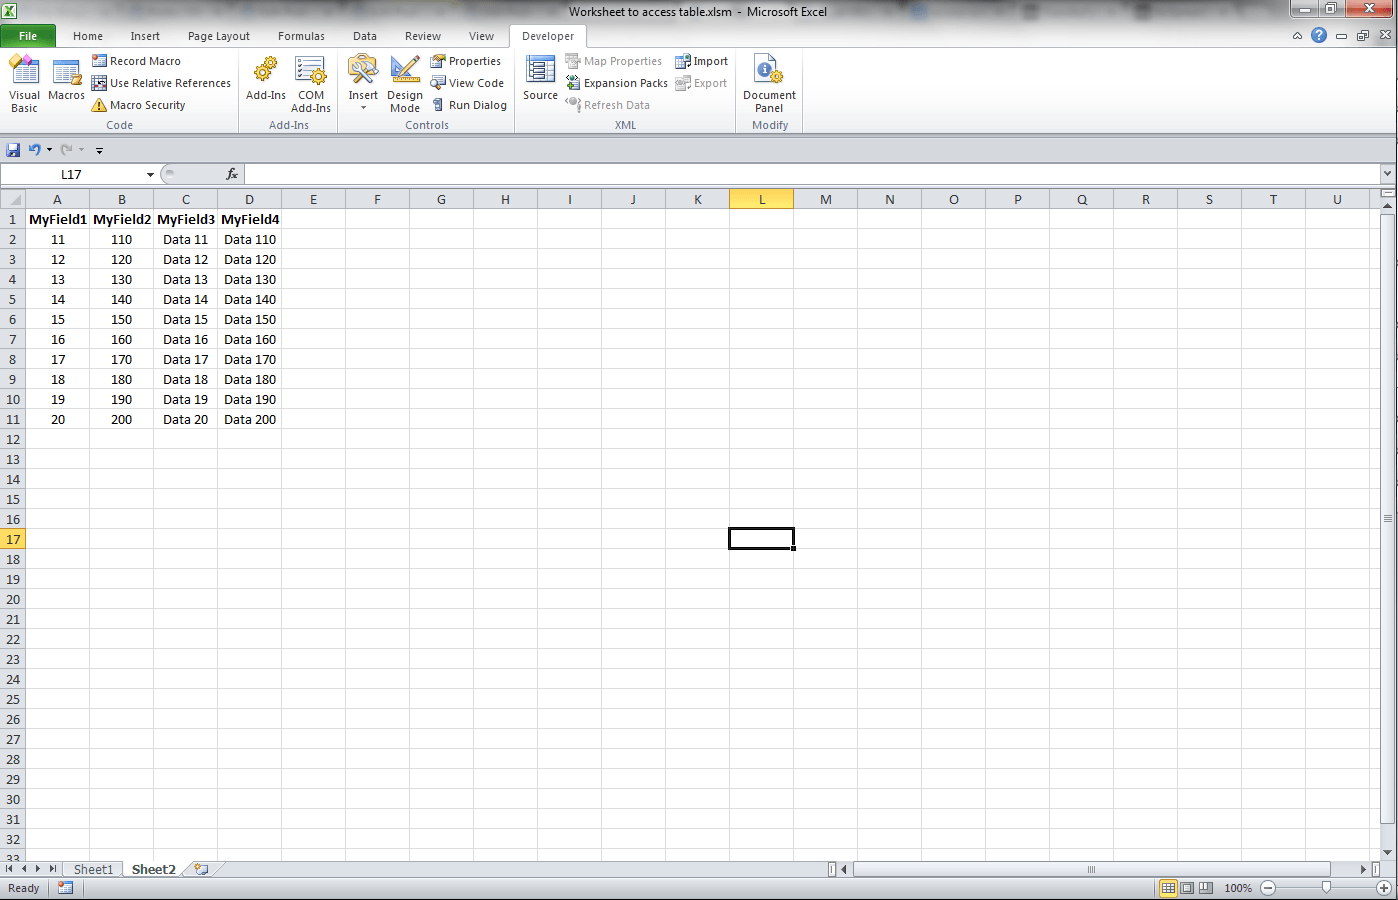 Excel Vba Export Worksheet To Existing Access Table